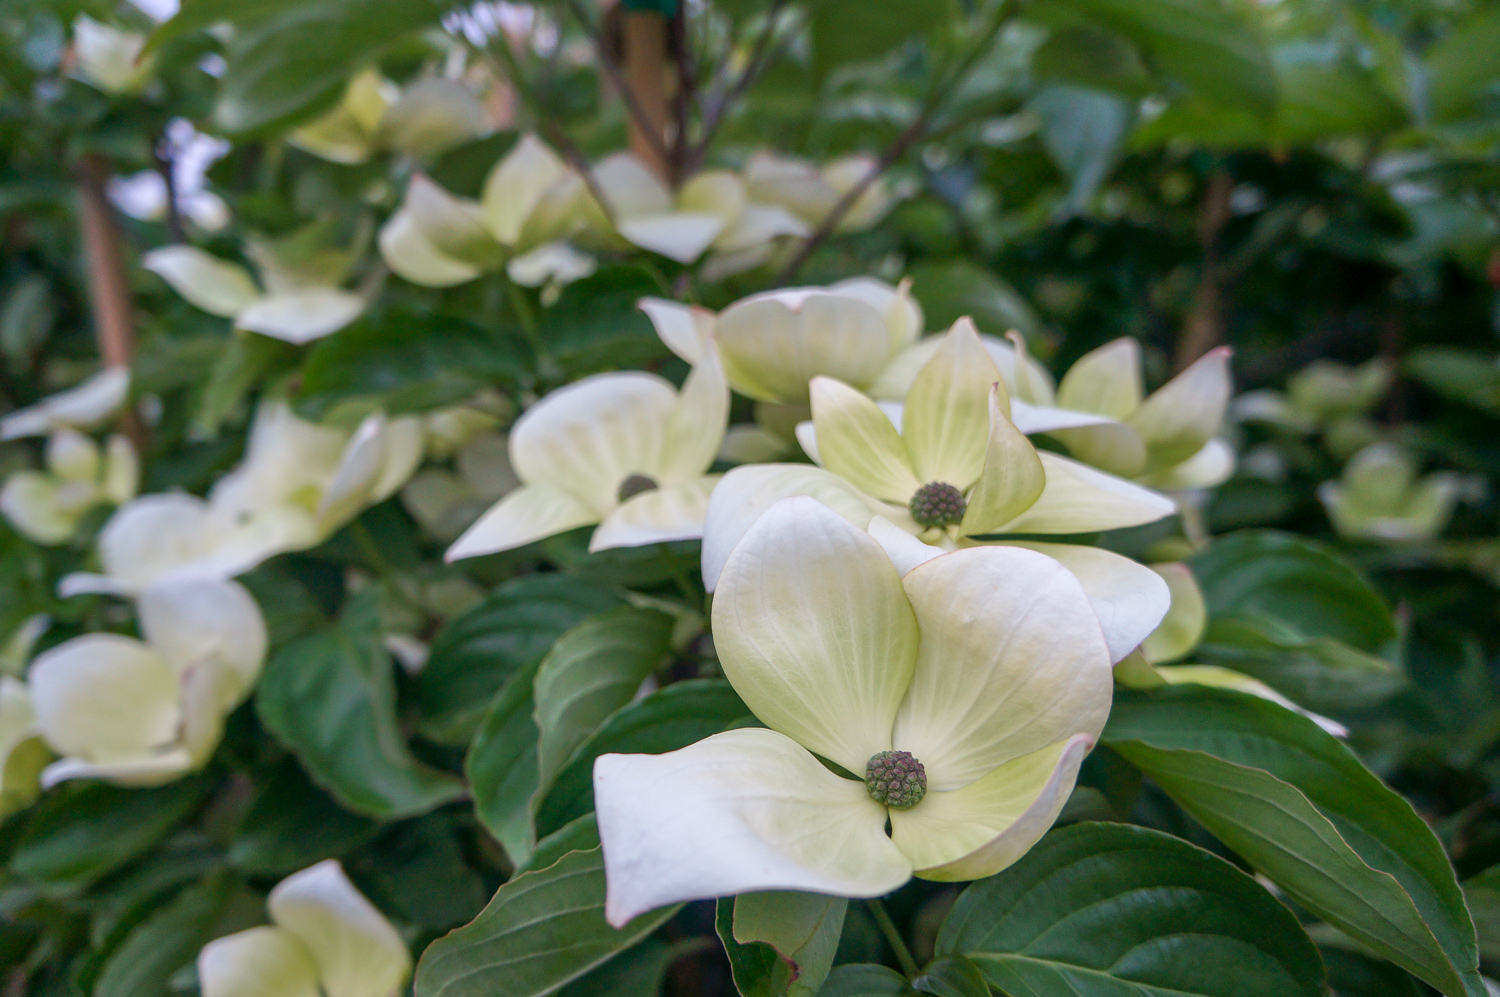 Eddies White Wonder Dogwood